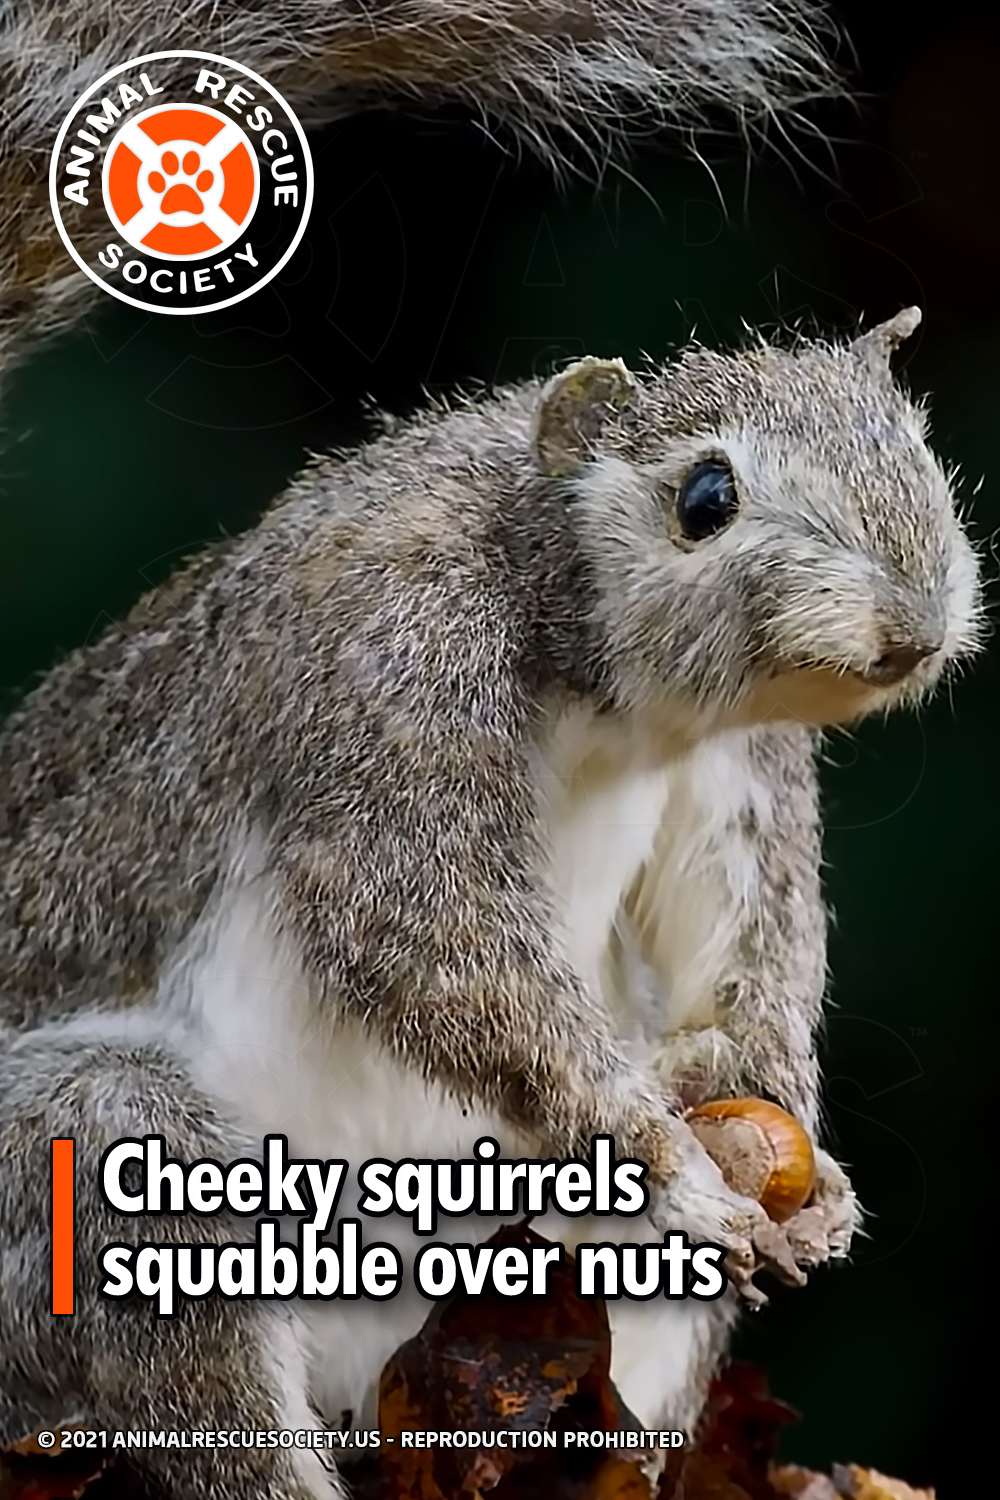 Cheeky squirrels squabble over nuts